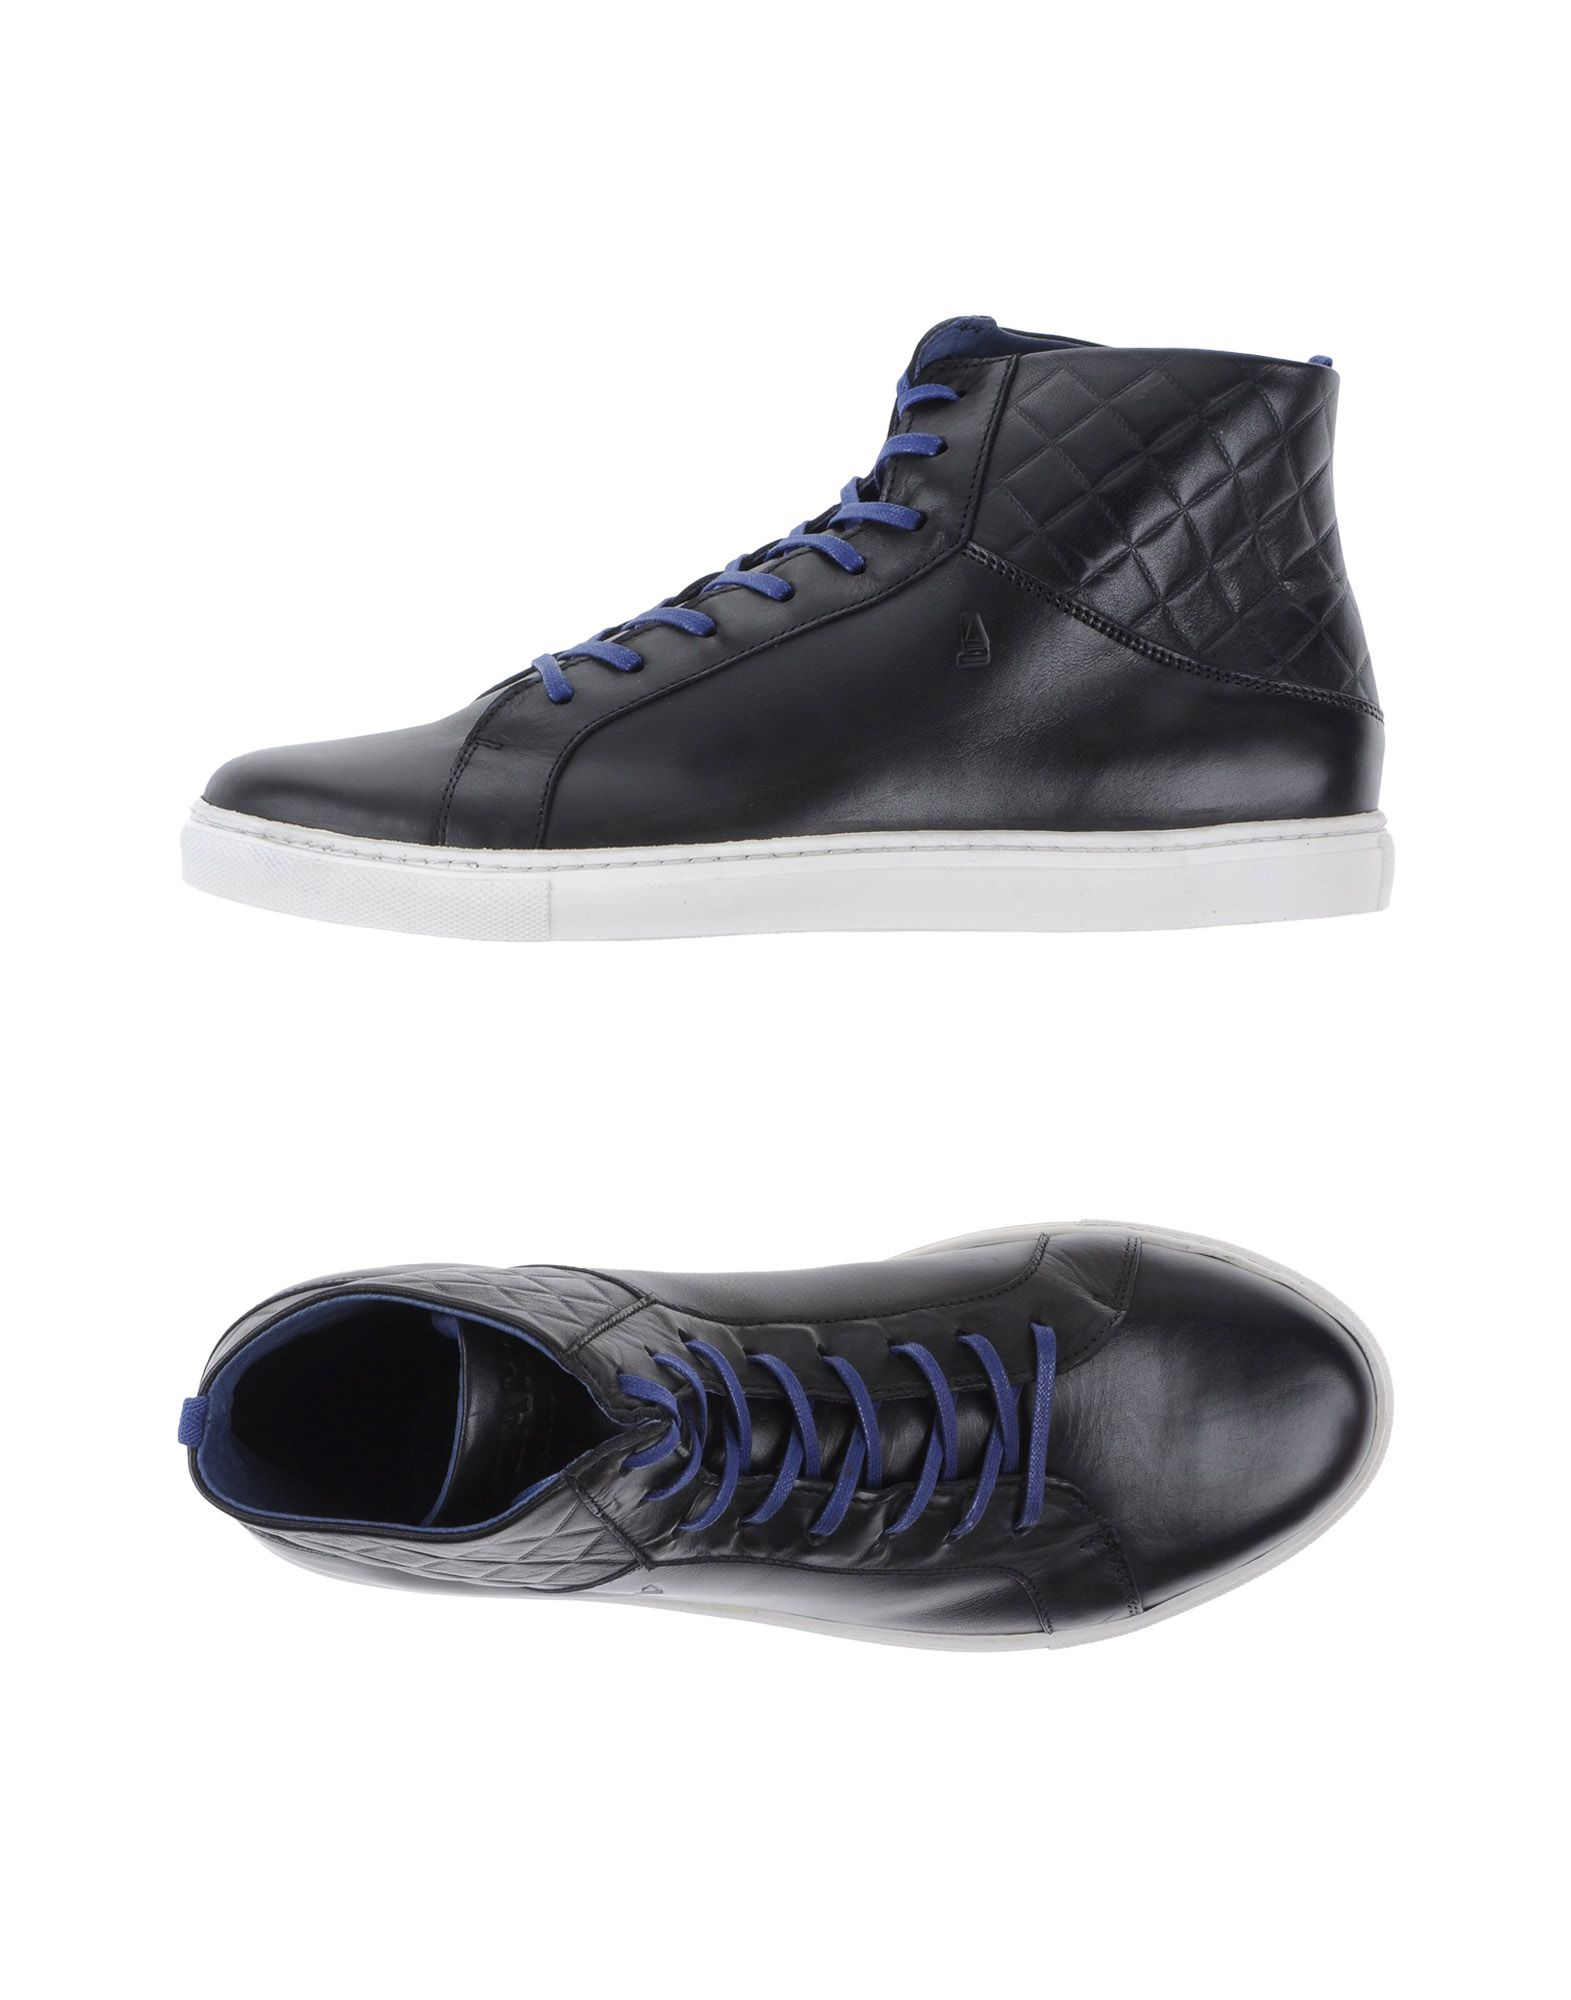 Patagonia Shoes High Top Shoes